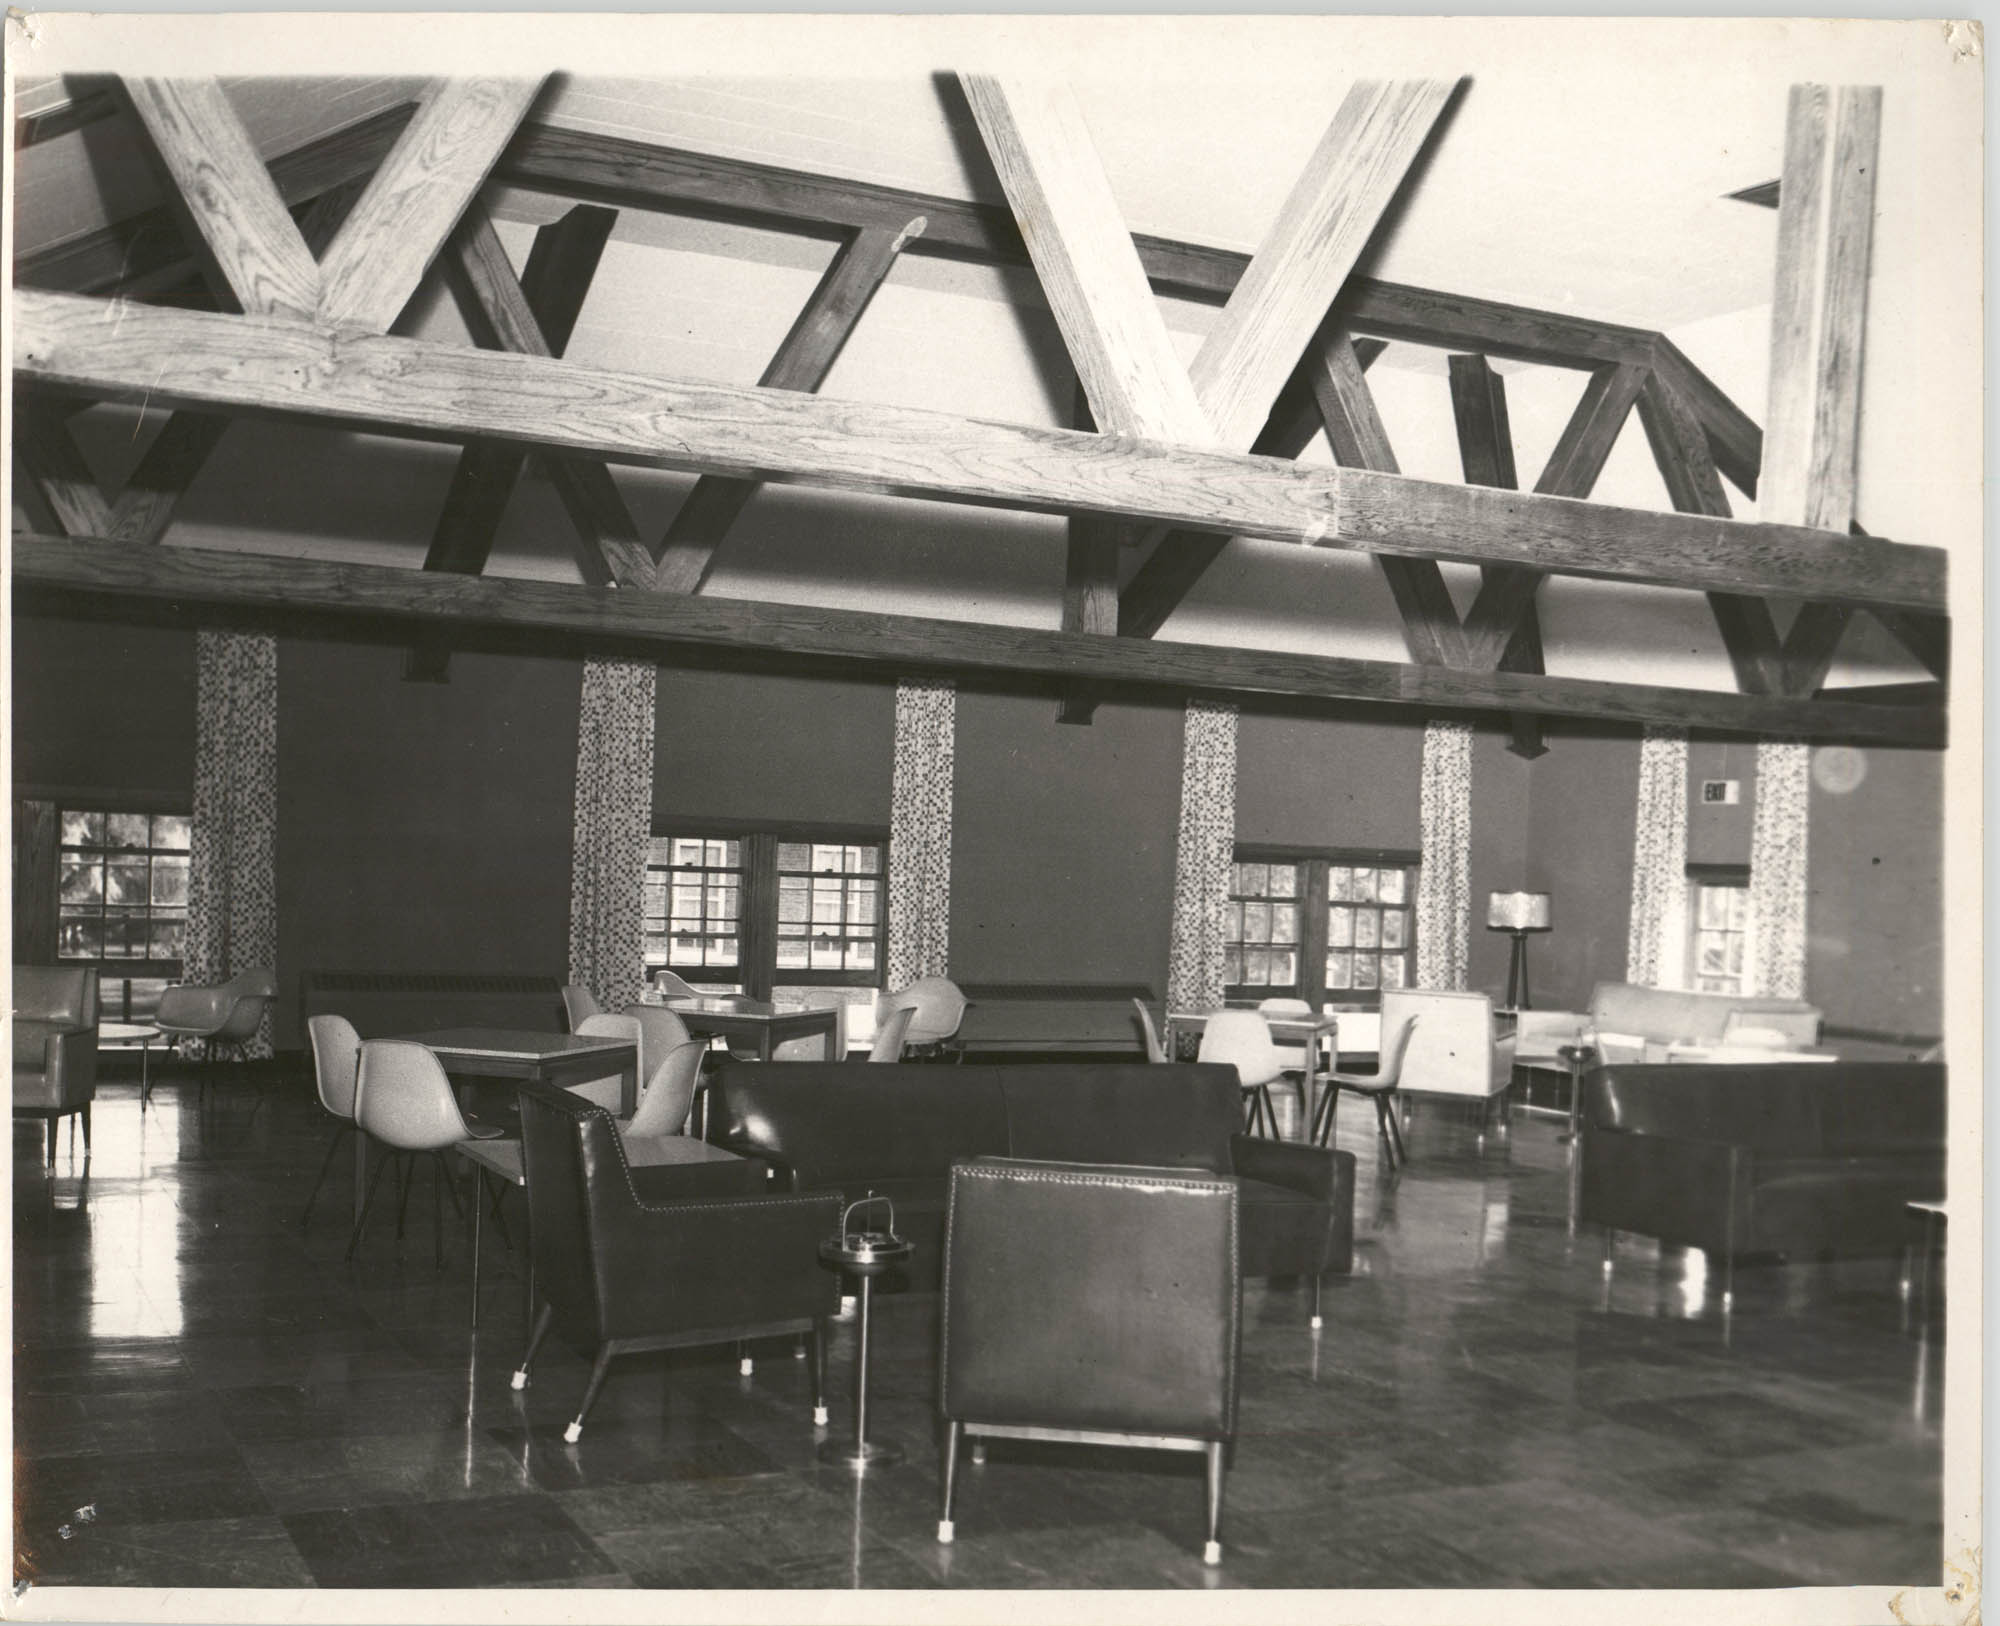 Photograph of a Room at Talladega College